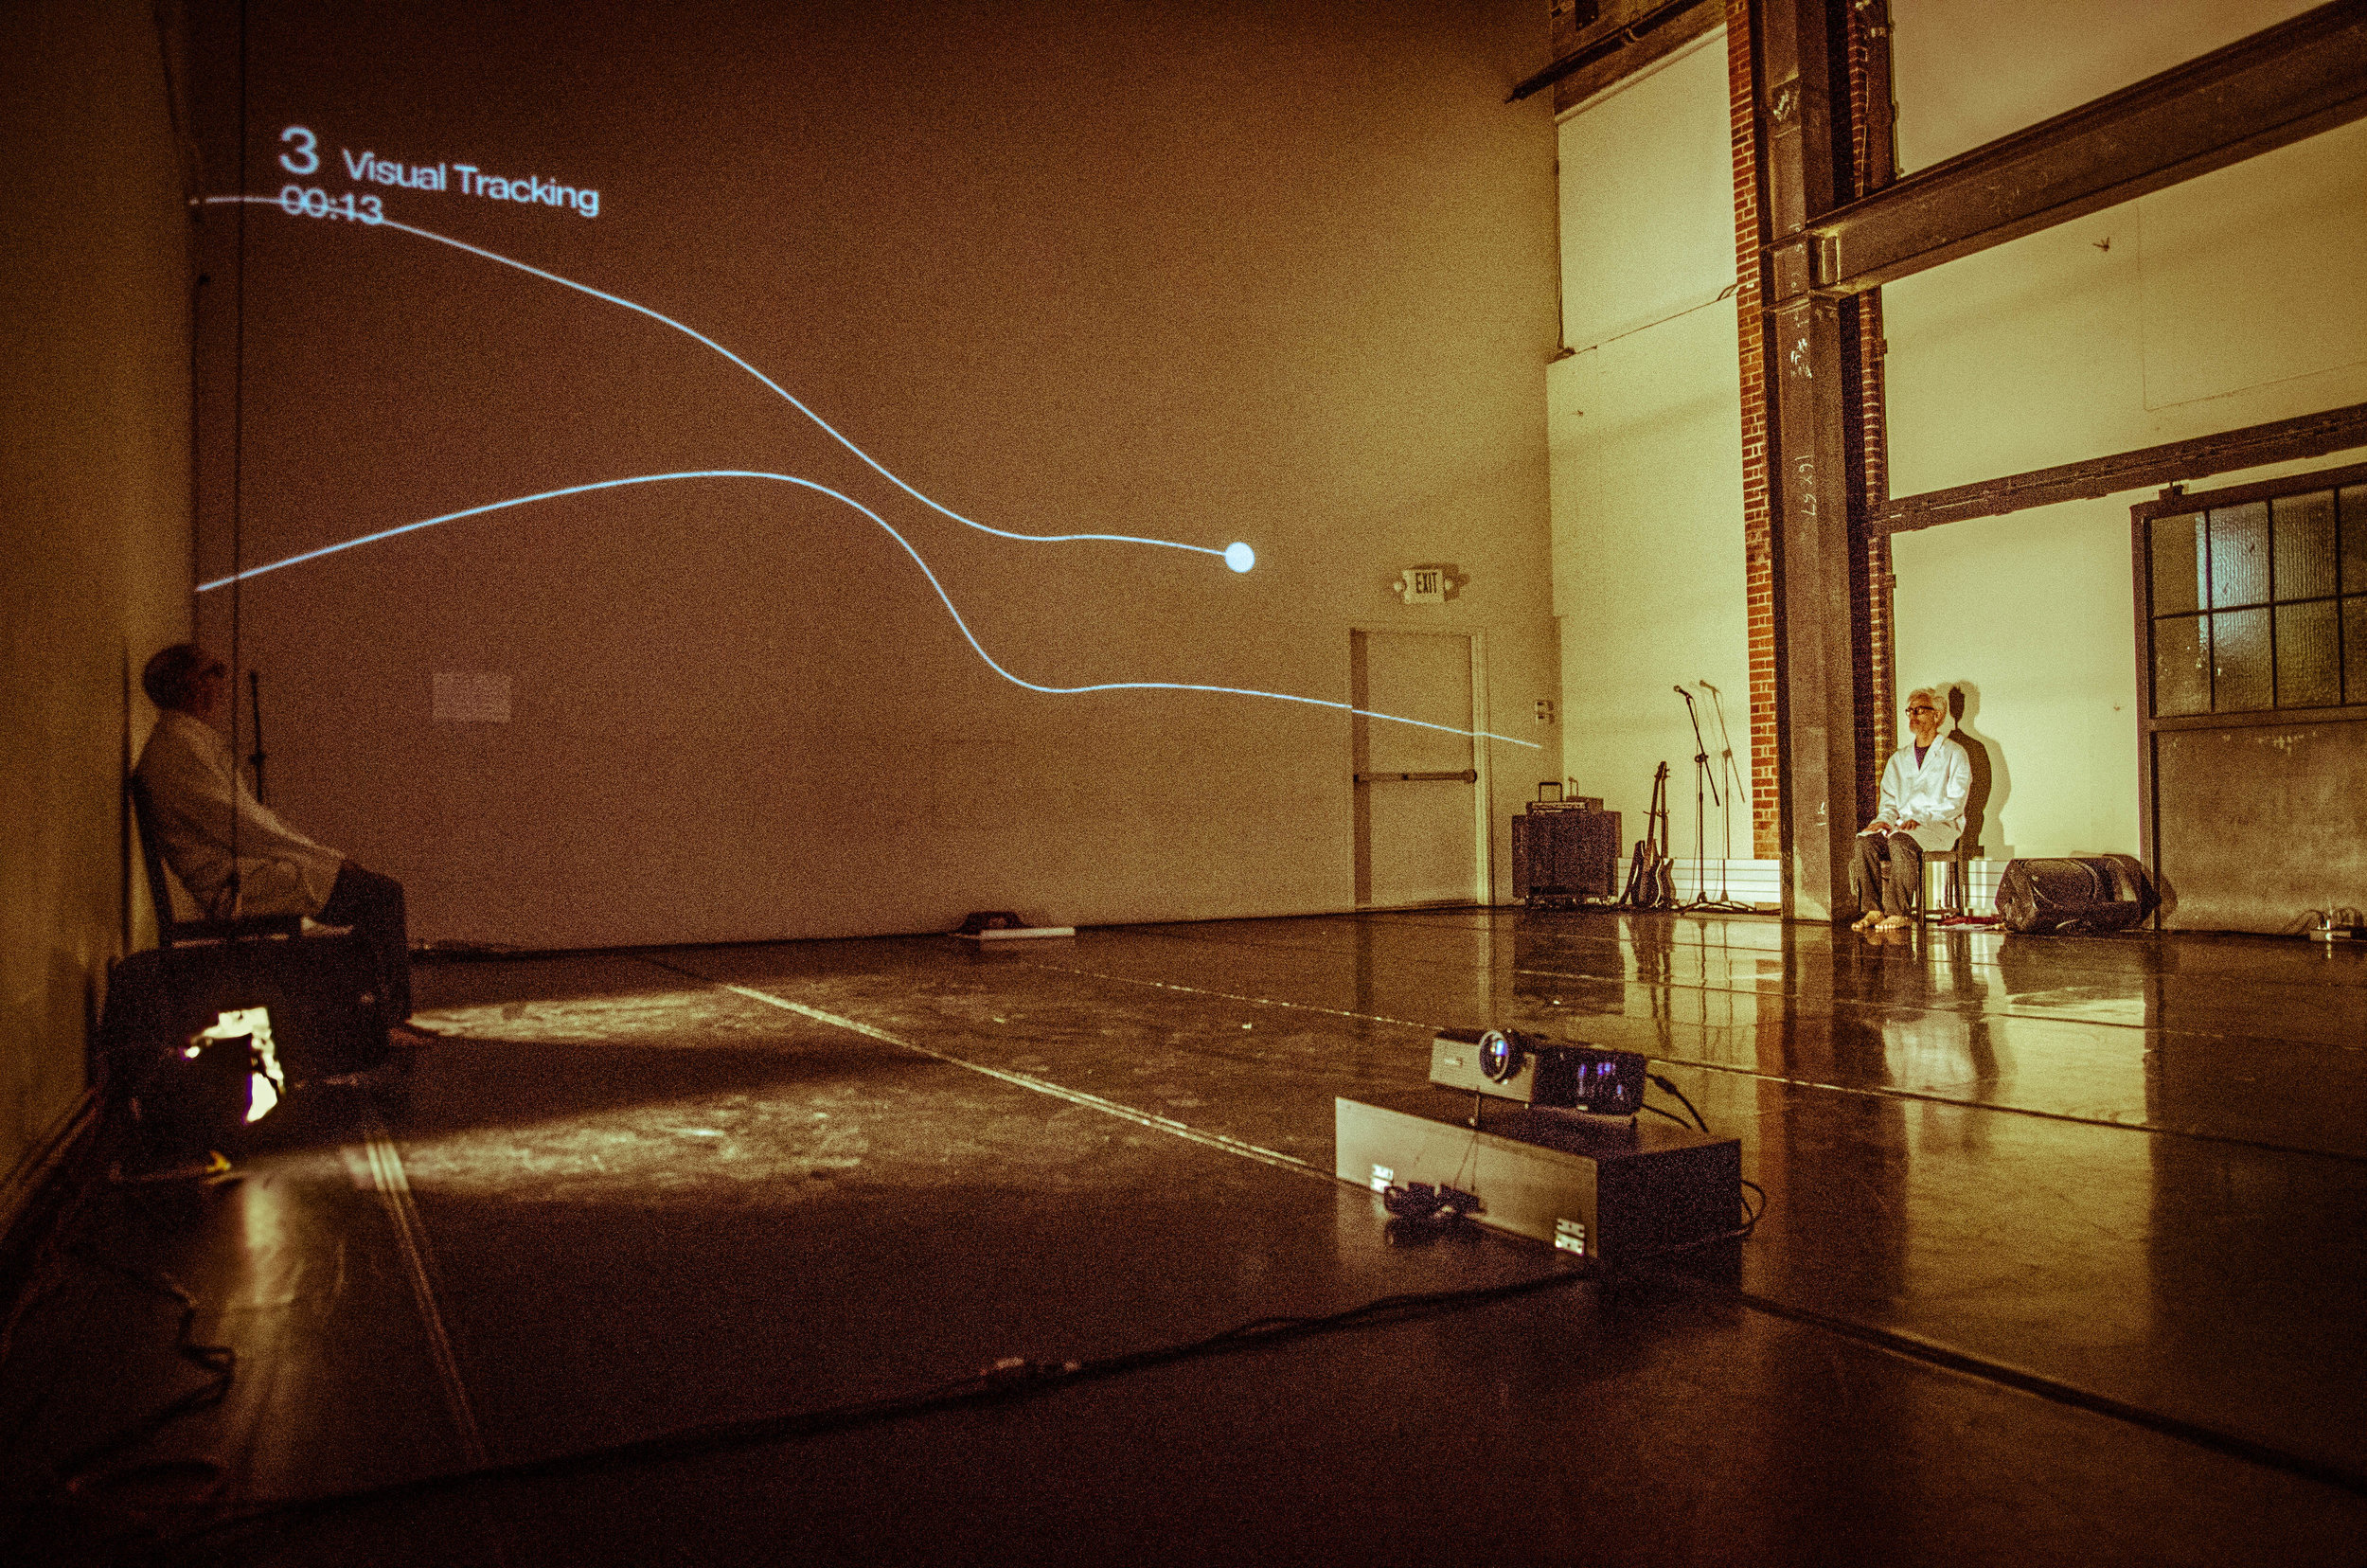 """Müller and Curtis sit on opposite sides of a large white-walled room. Projection on back wall of 2 wavy lines reads """"3 Visual Tracking 00:13."""" (photo: Robbie Sweeny)"""